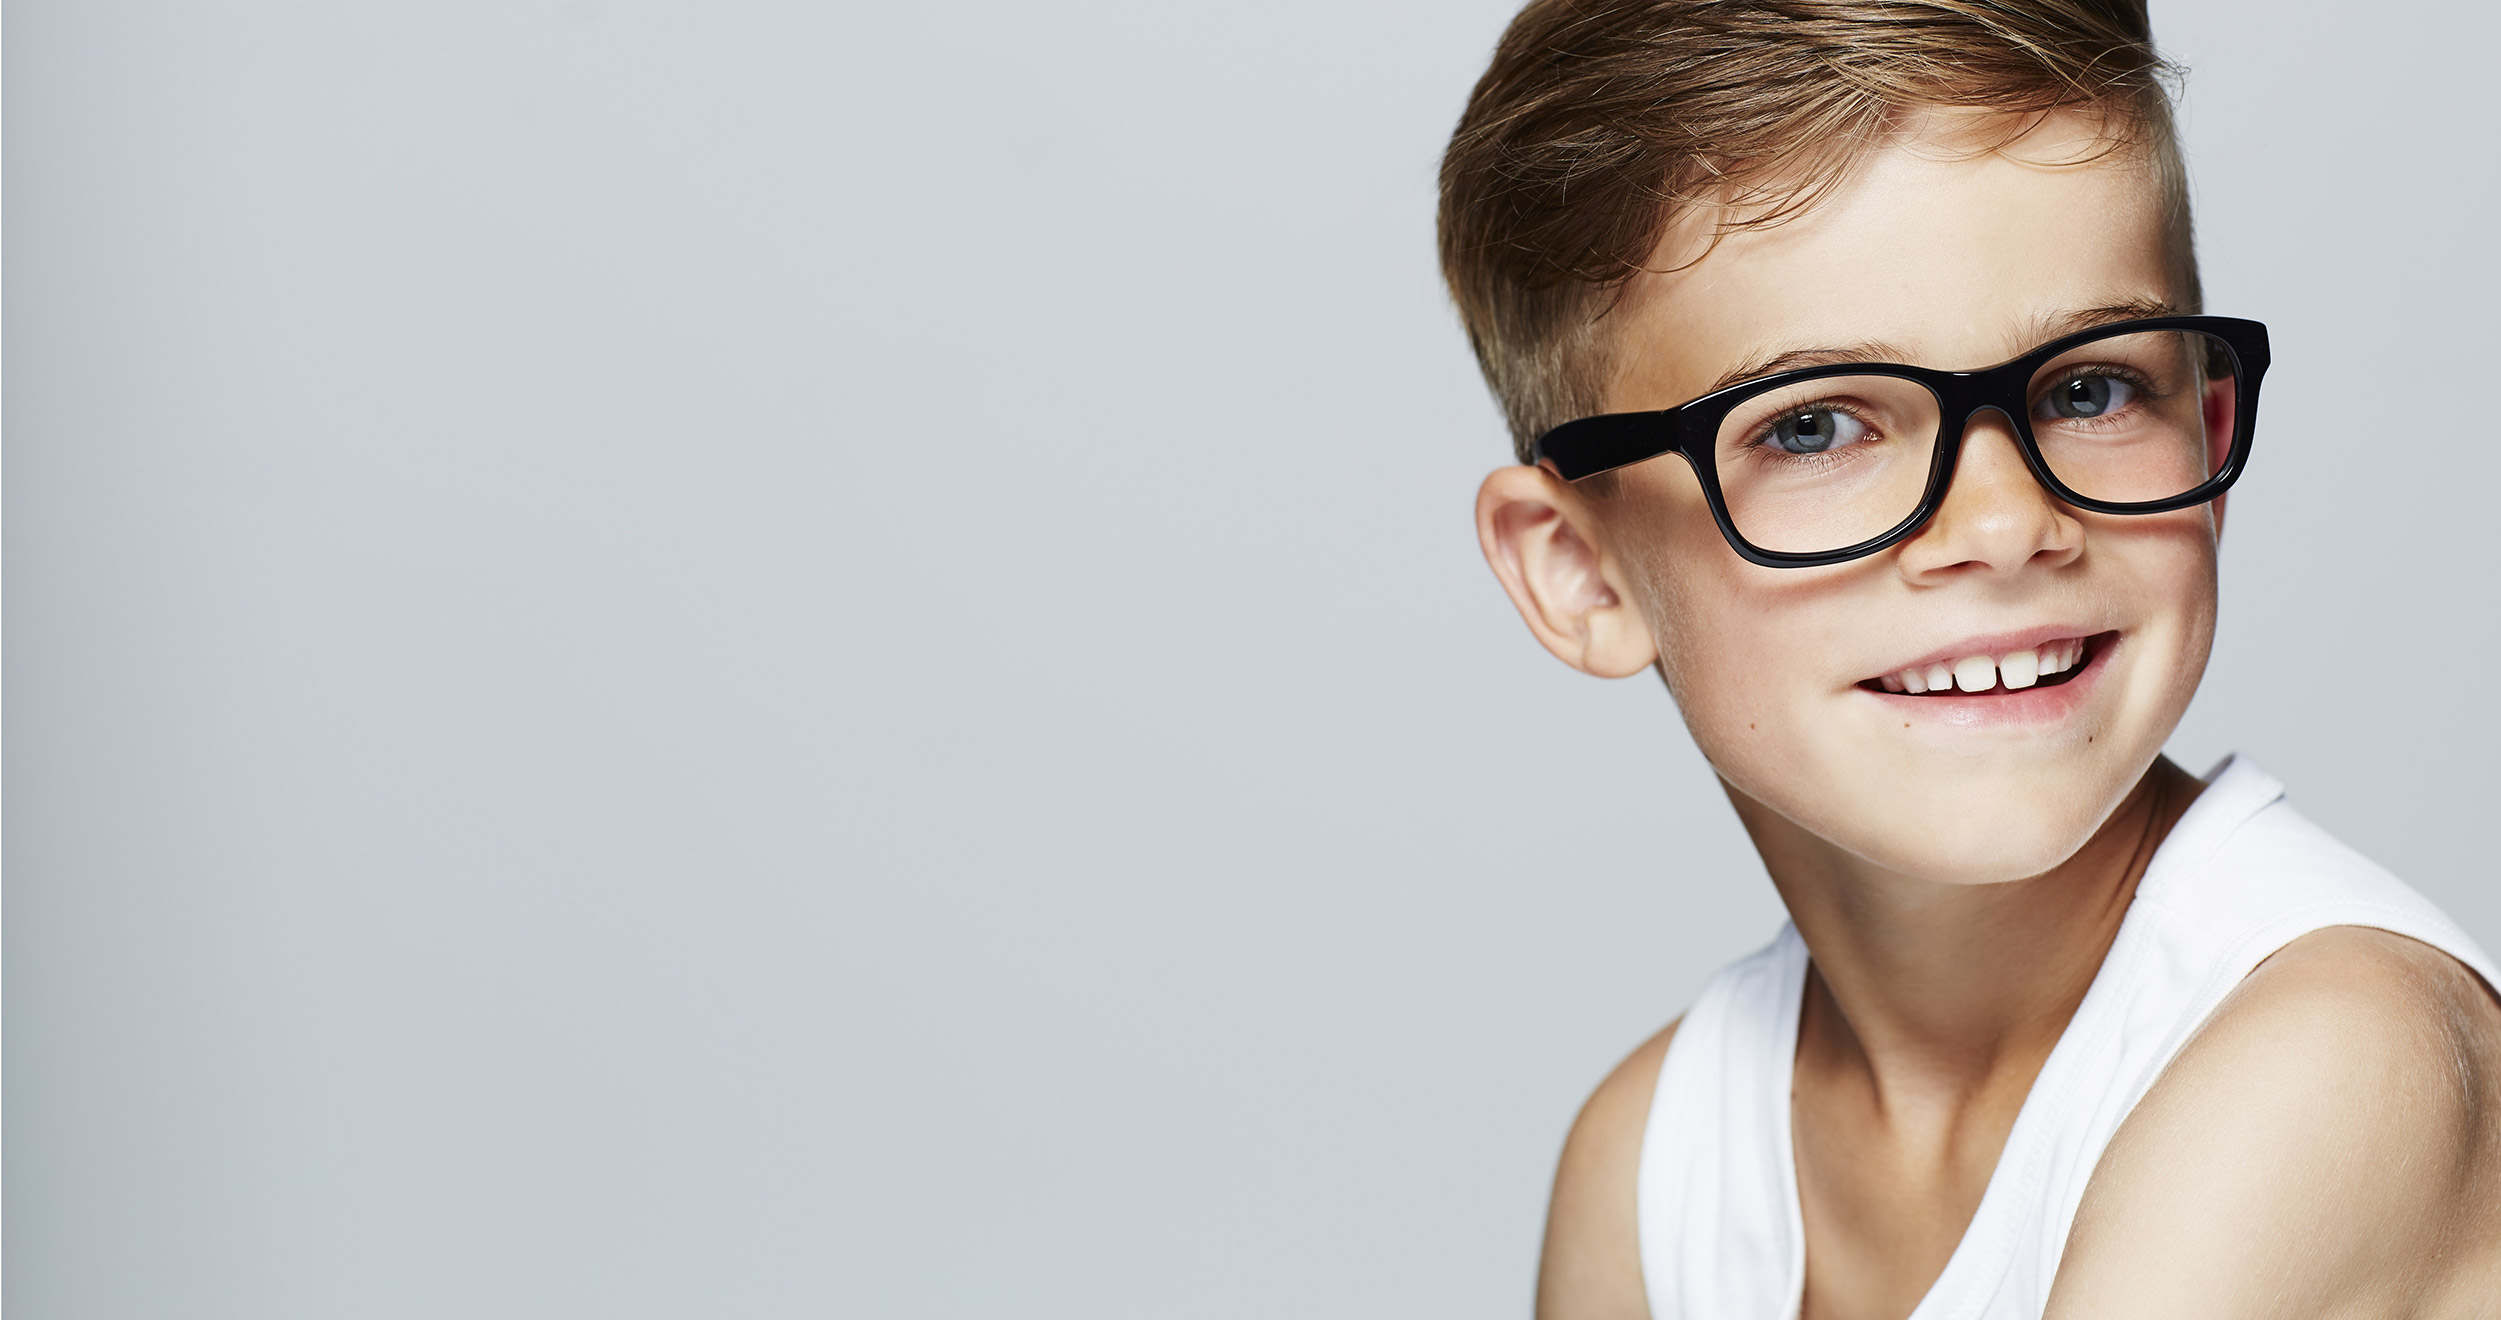 young boy with large glasses